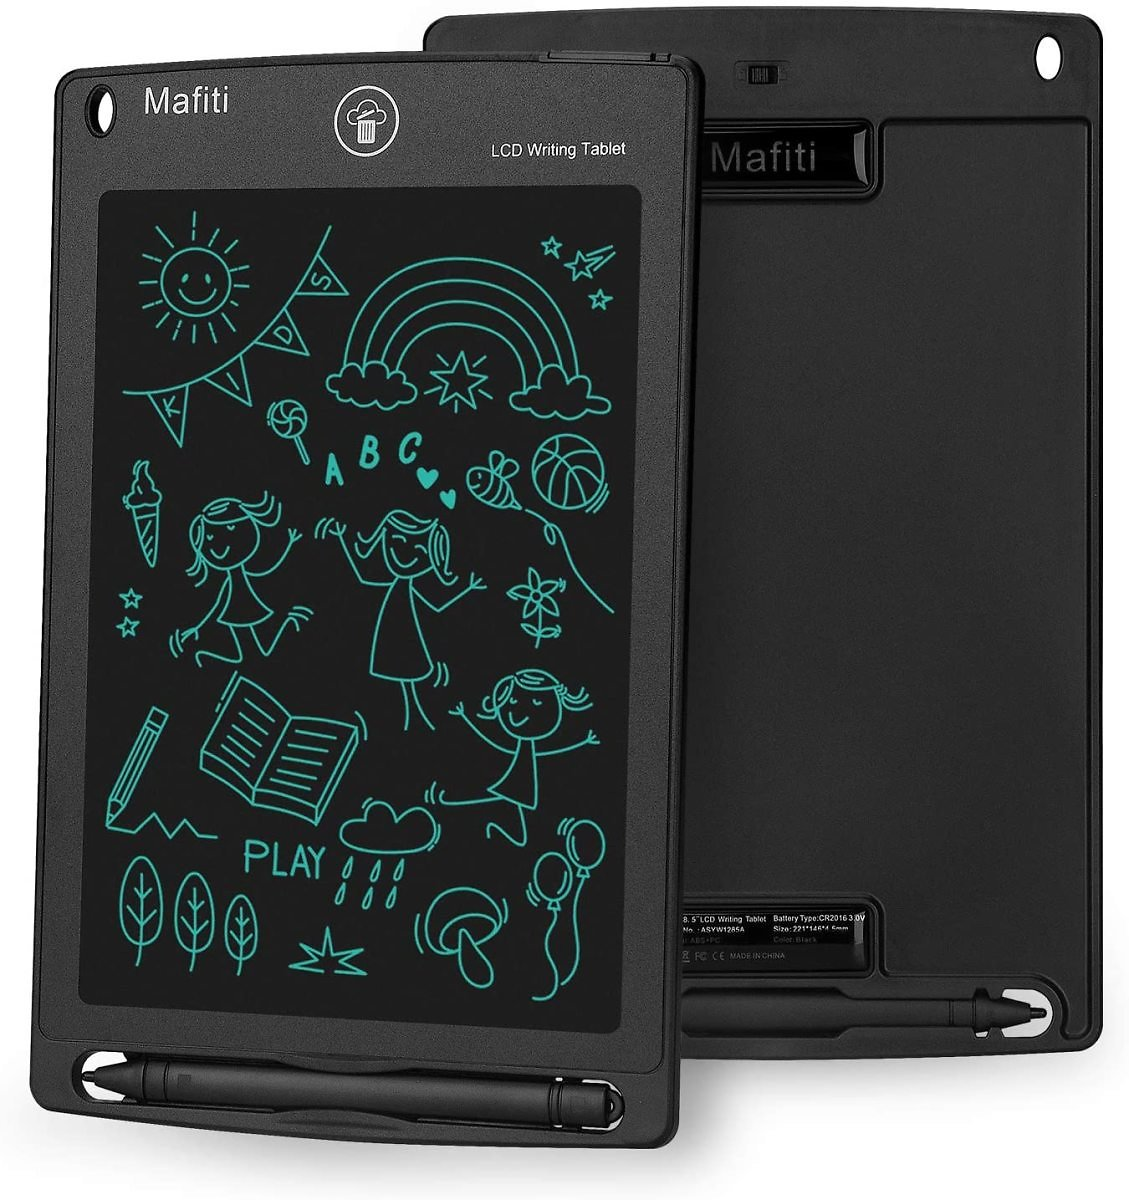 Mafiti LCD Writing Tablet 8.5 Inch Electronic Writing Drawing Pad Portable Doodle Board Gifts for Kids Office Memo Home